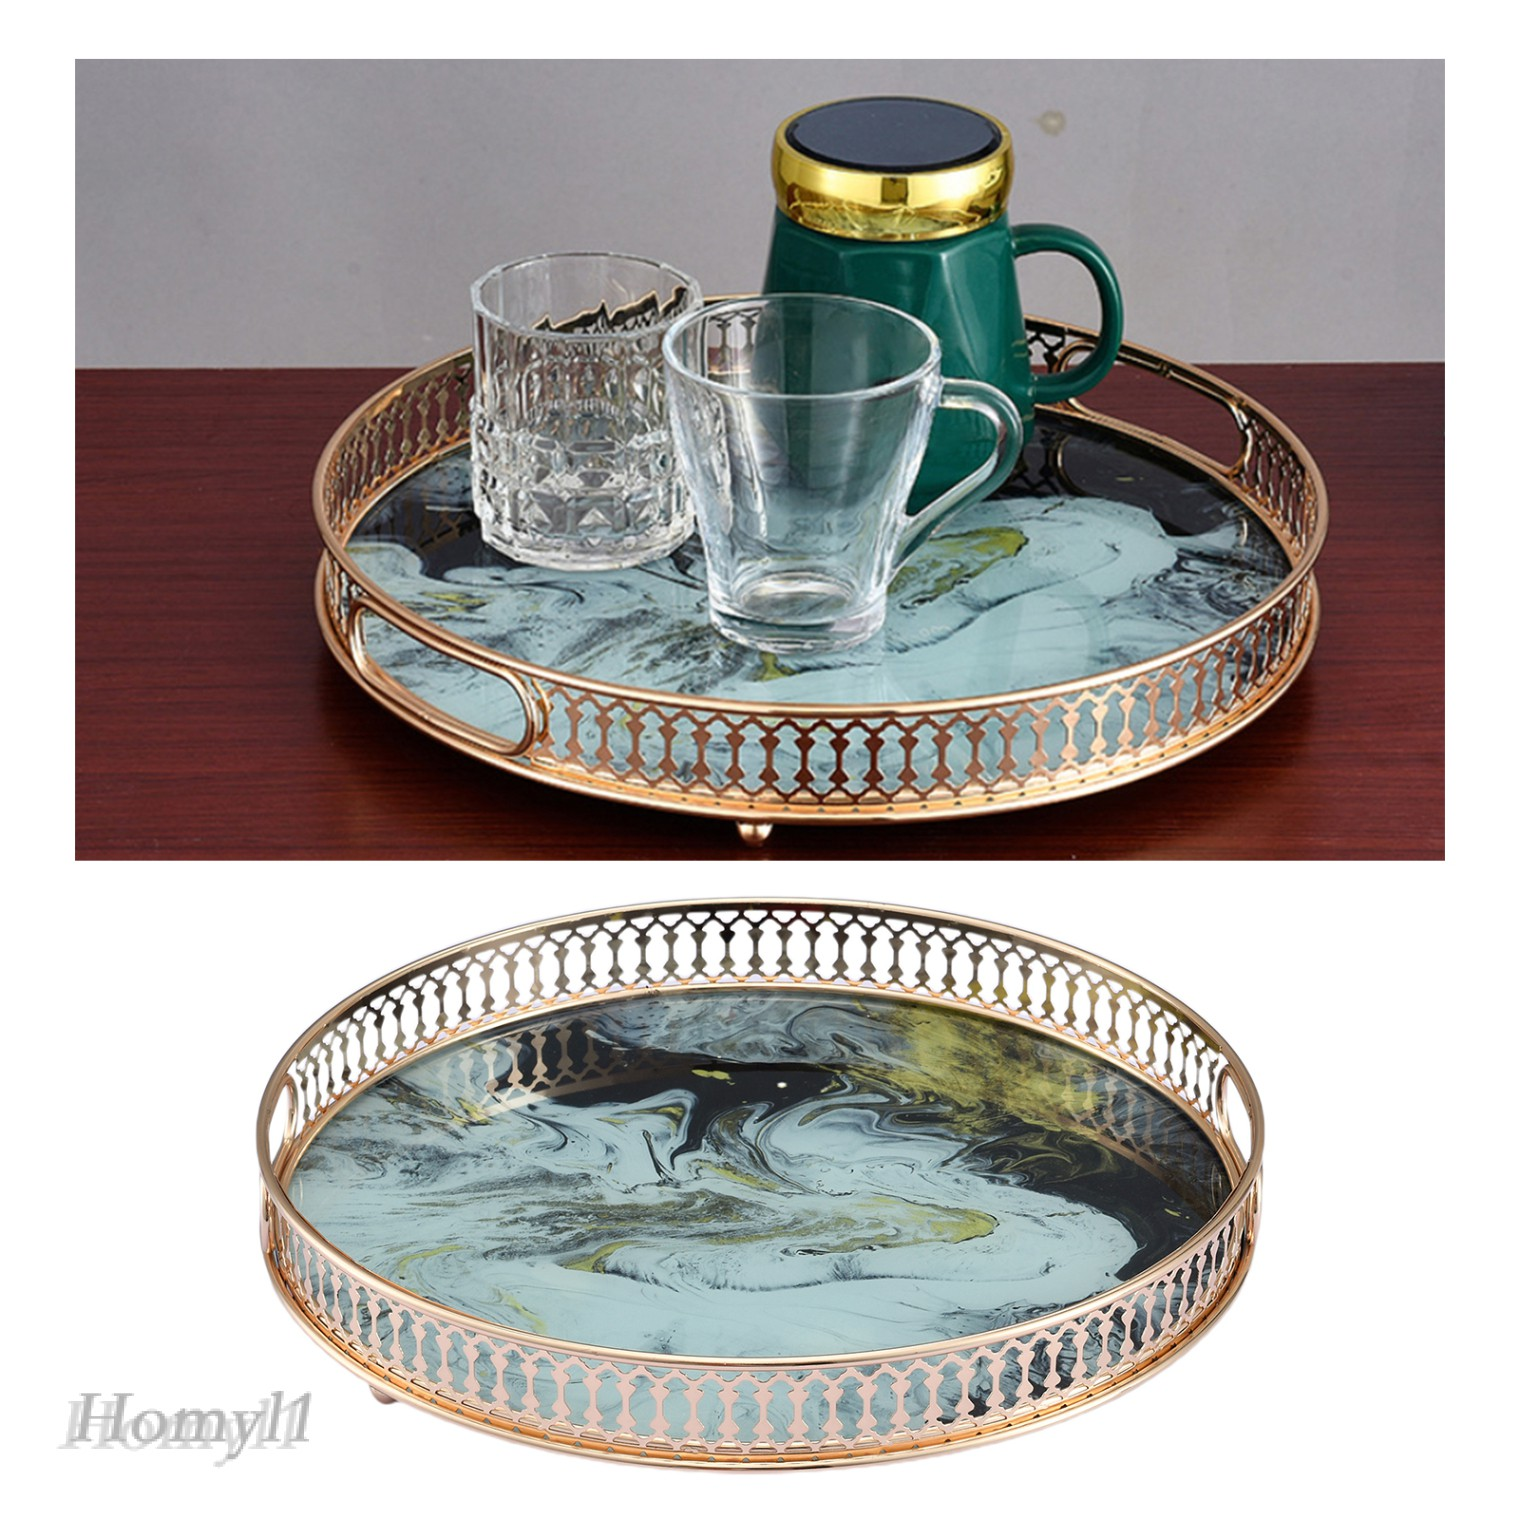 Homyl1 Gold Mirror Tray Perfume Glass Vanity Tray Dresser Tray Ornate Metal Decorative Shopee Malaysia